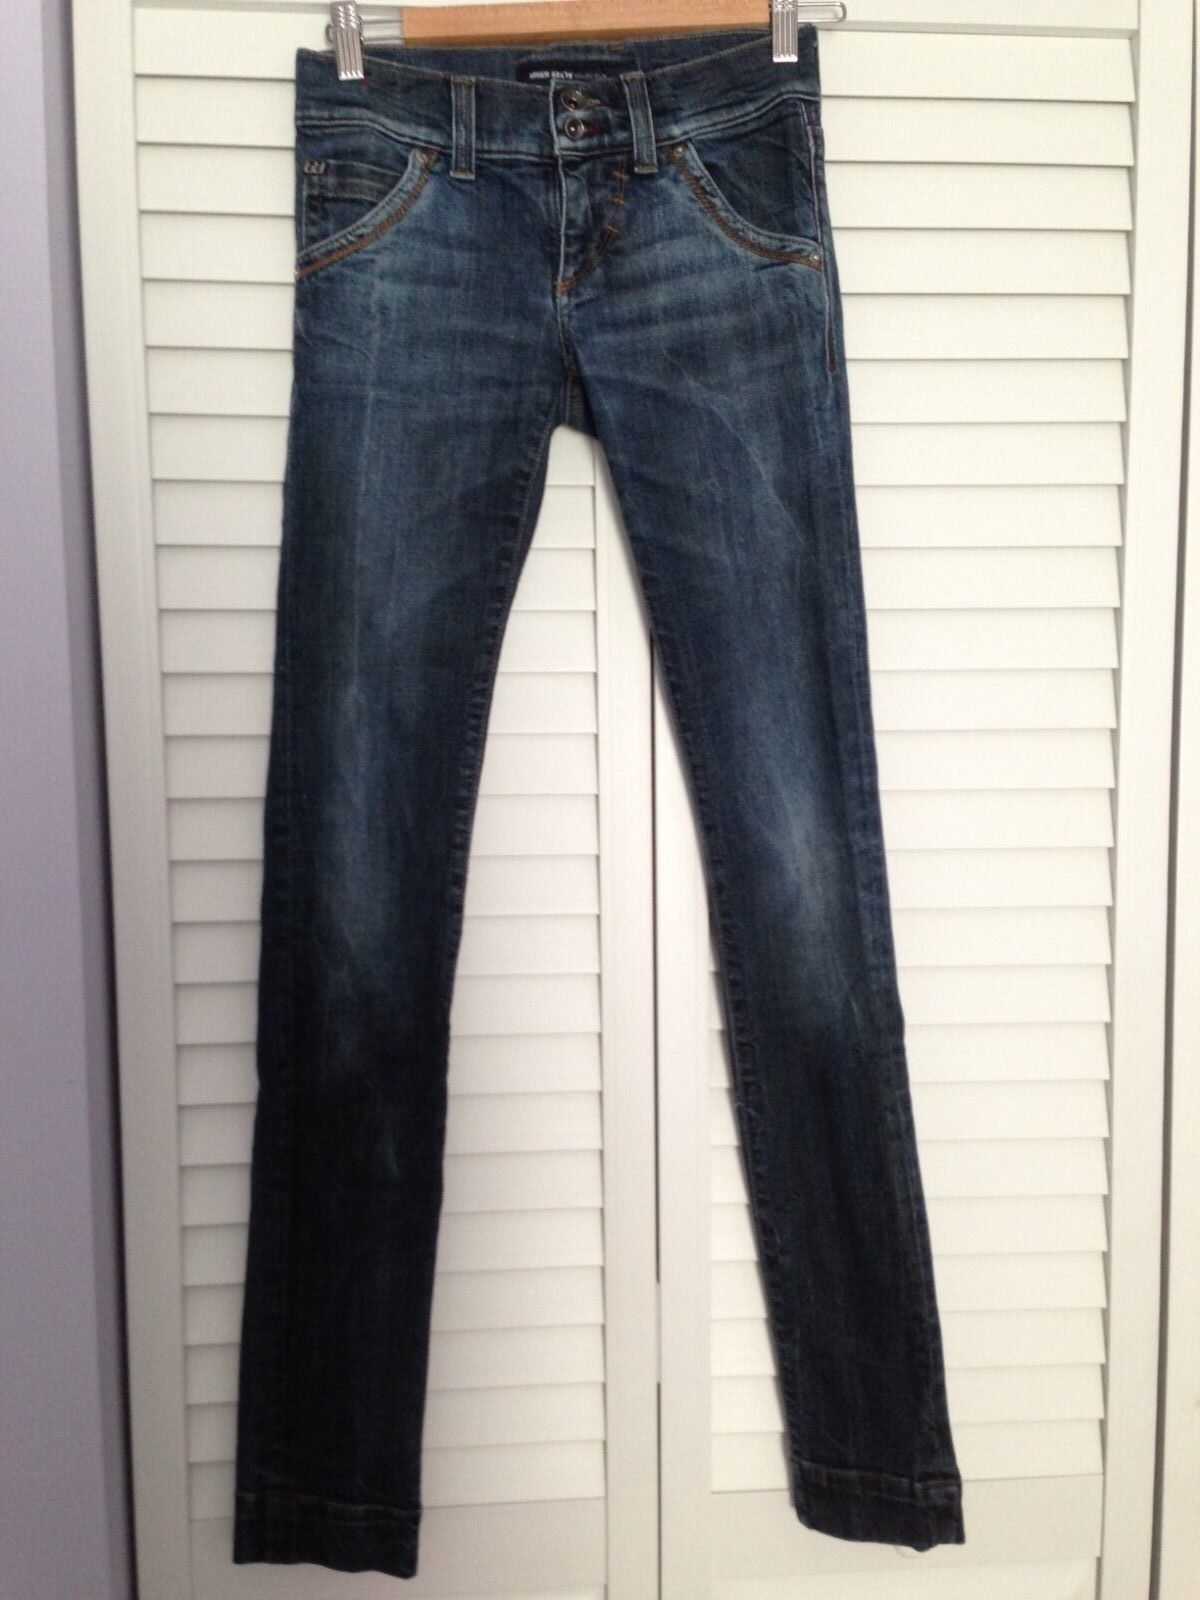 MISS SIXTY blueE SKINNY LOW RISE JEANS, SIZE 24